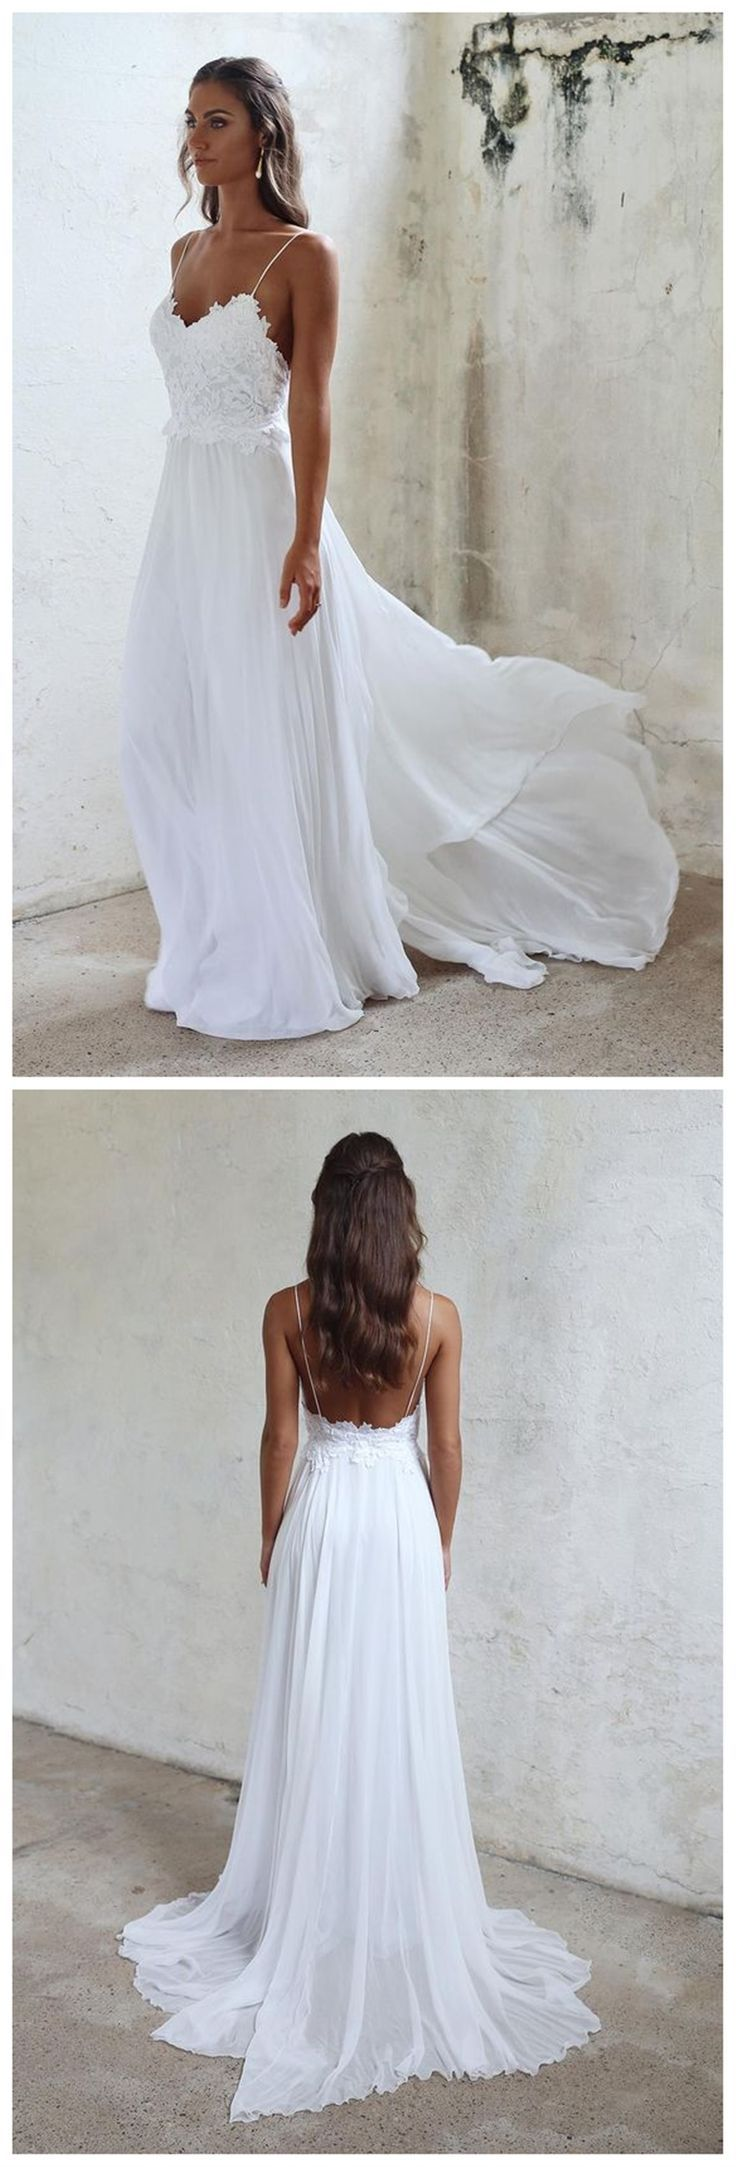 Beach Sexy Simple Spaghetti White Lace Side Slit Wedding Dresses For Beach Wedding, WD0047 #bridesmaid #wedding #bridesmaiddresses #cheapbridesmaiddresses #weddingidea